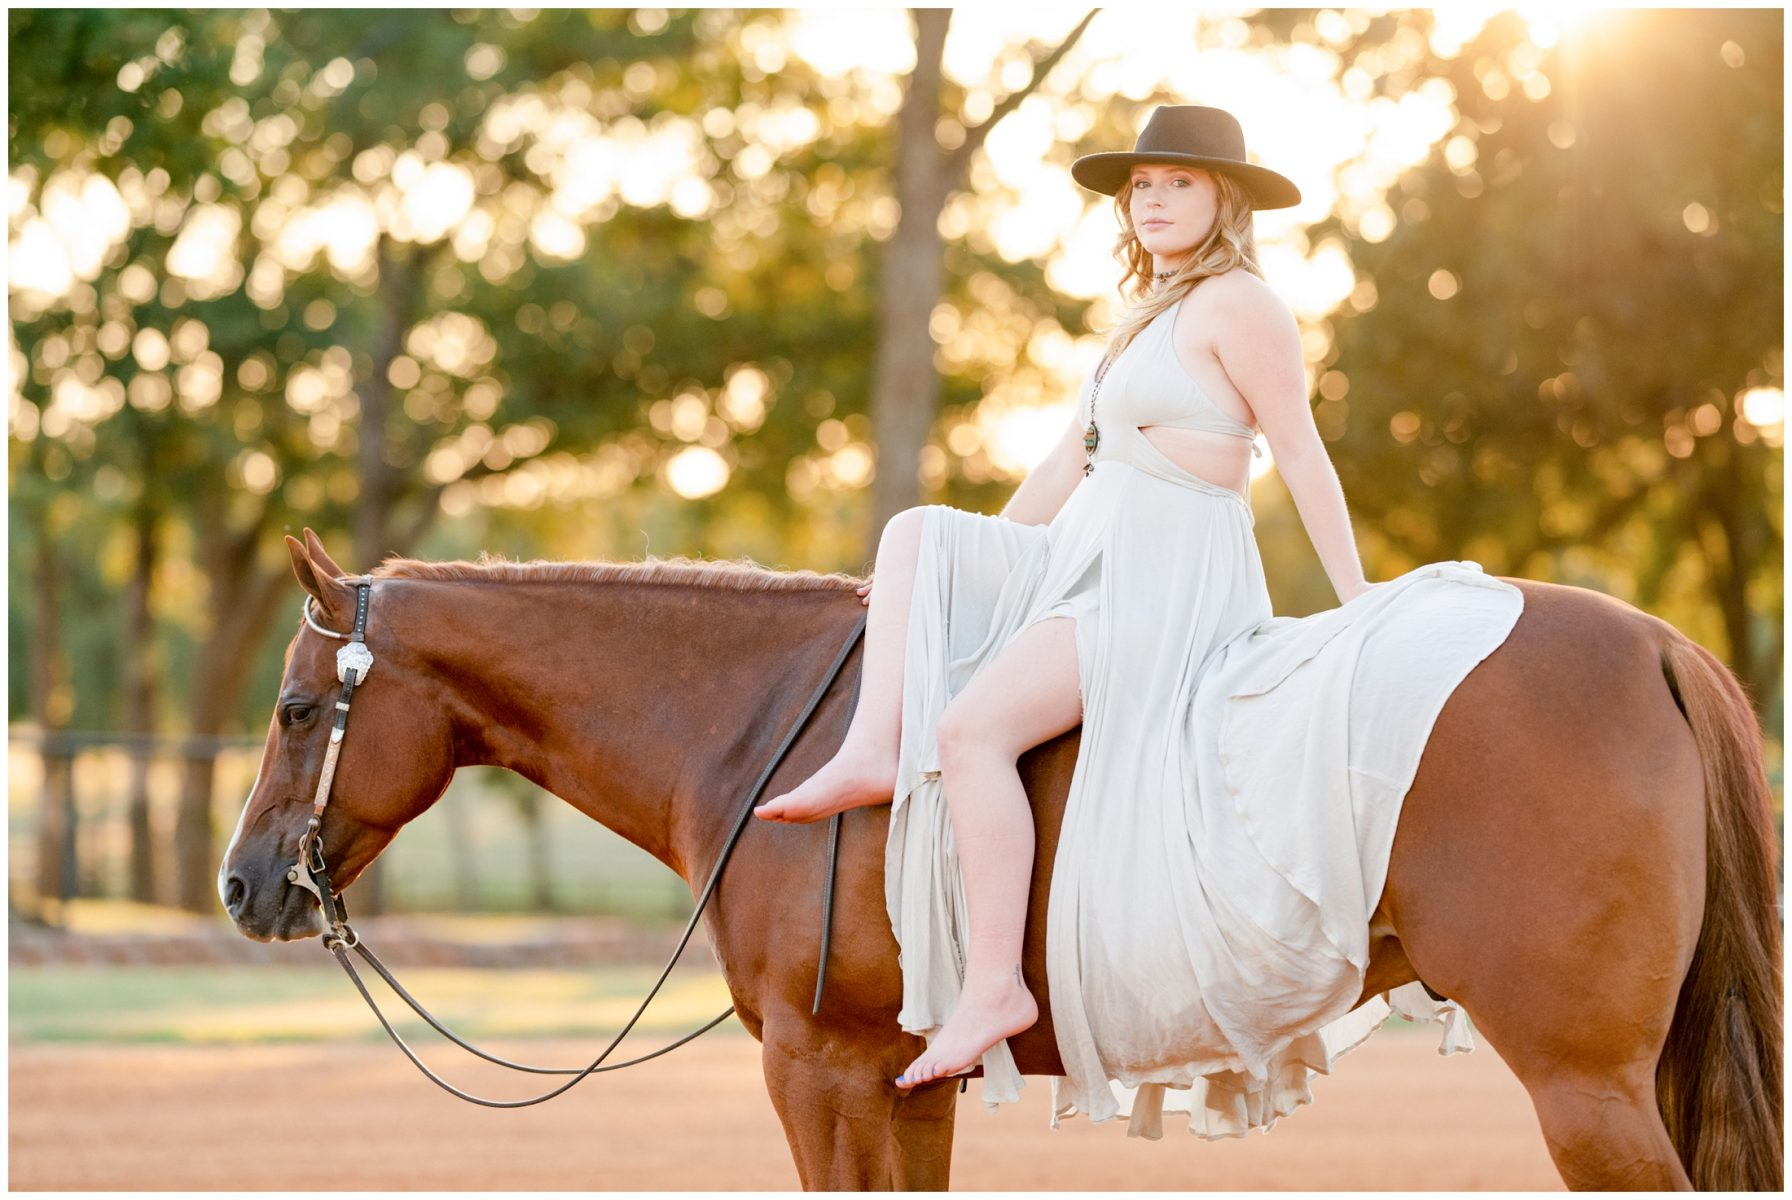 http://kirstiemarie.com/wp-content/uploads/2019/10/Millie-Anderson-and-Only-After-You-Vickery-Performance-Horses-Pilot-Point-Texas-AQHYA-Kirstie-Marie-Photography_0012-1.jpg